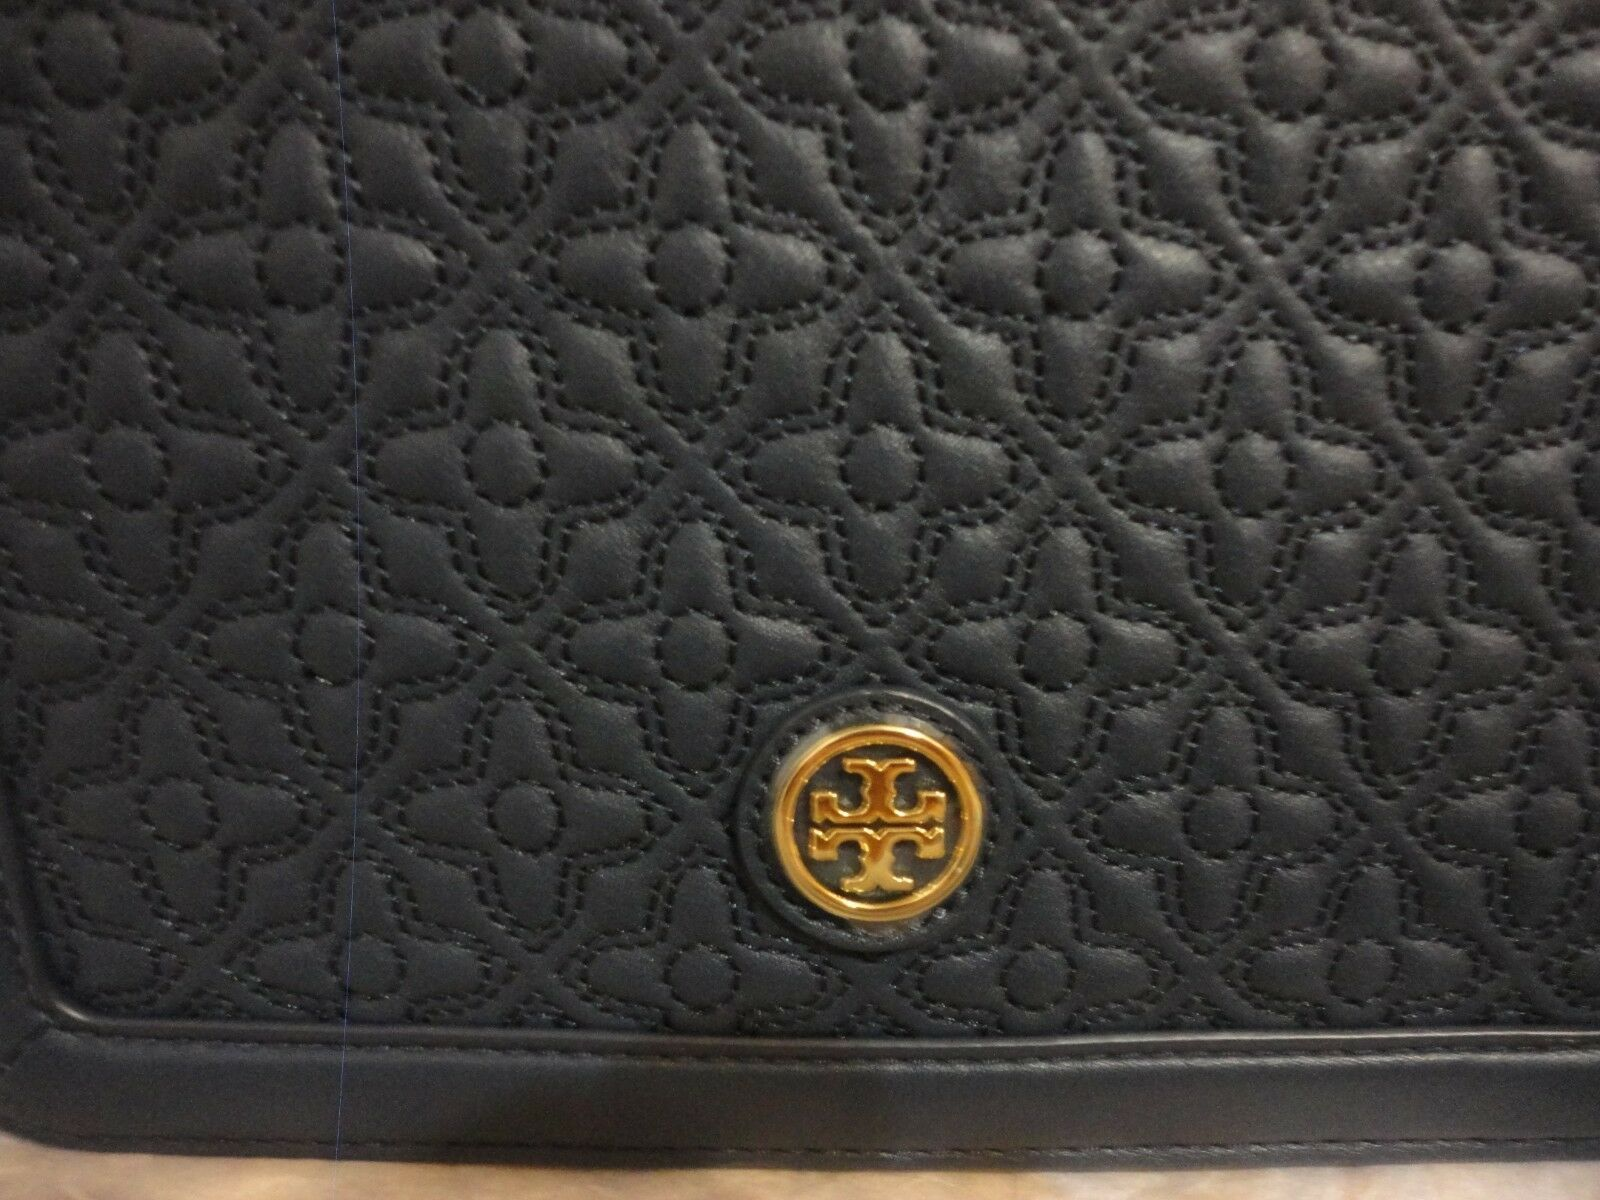 Tory Burch Bryant $495 Floral Quilted Hudson Bay Navy Blue Leather Crossbody Bag